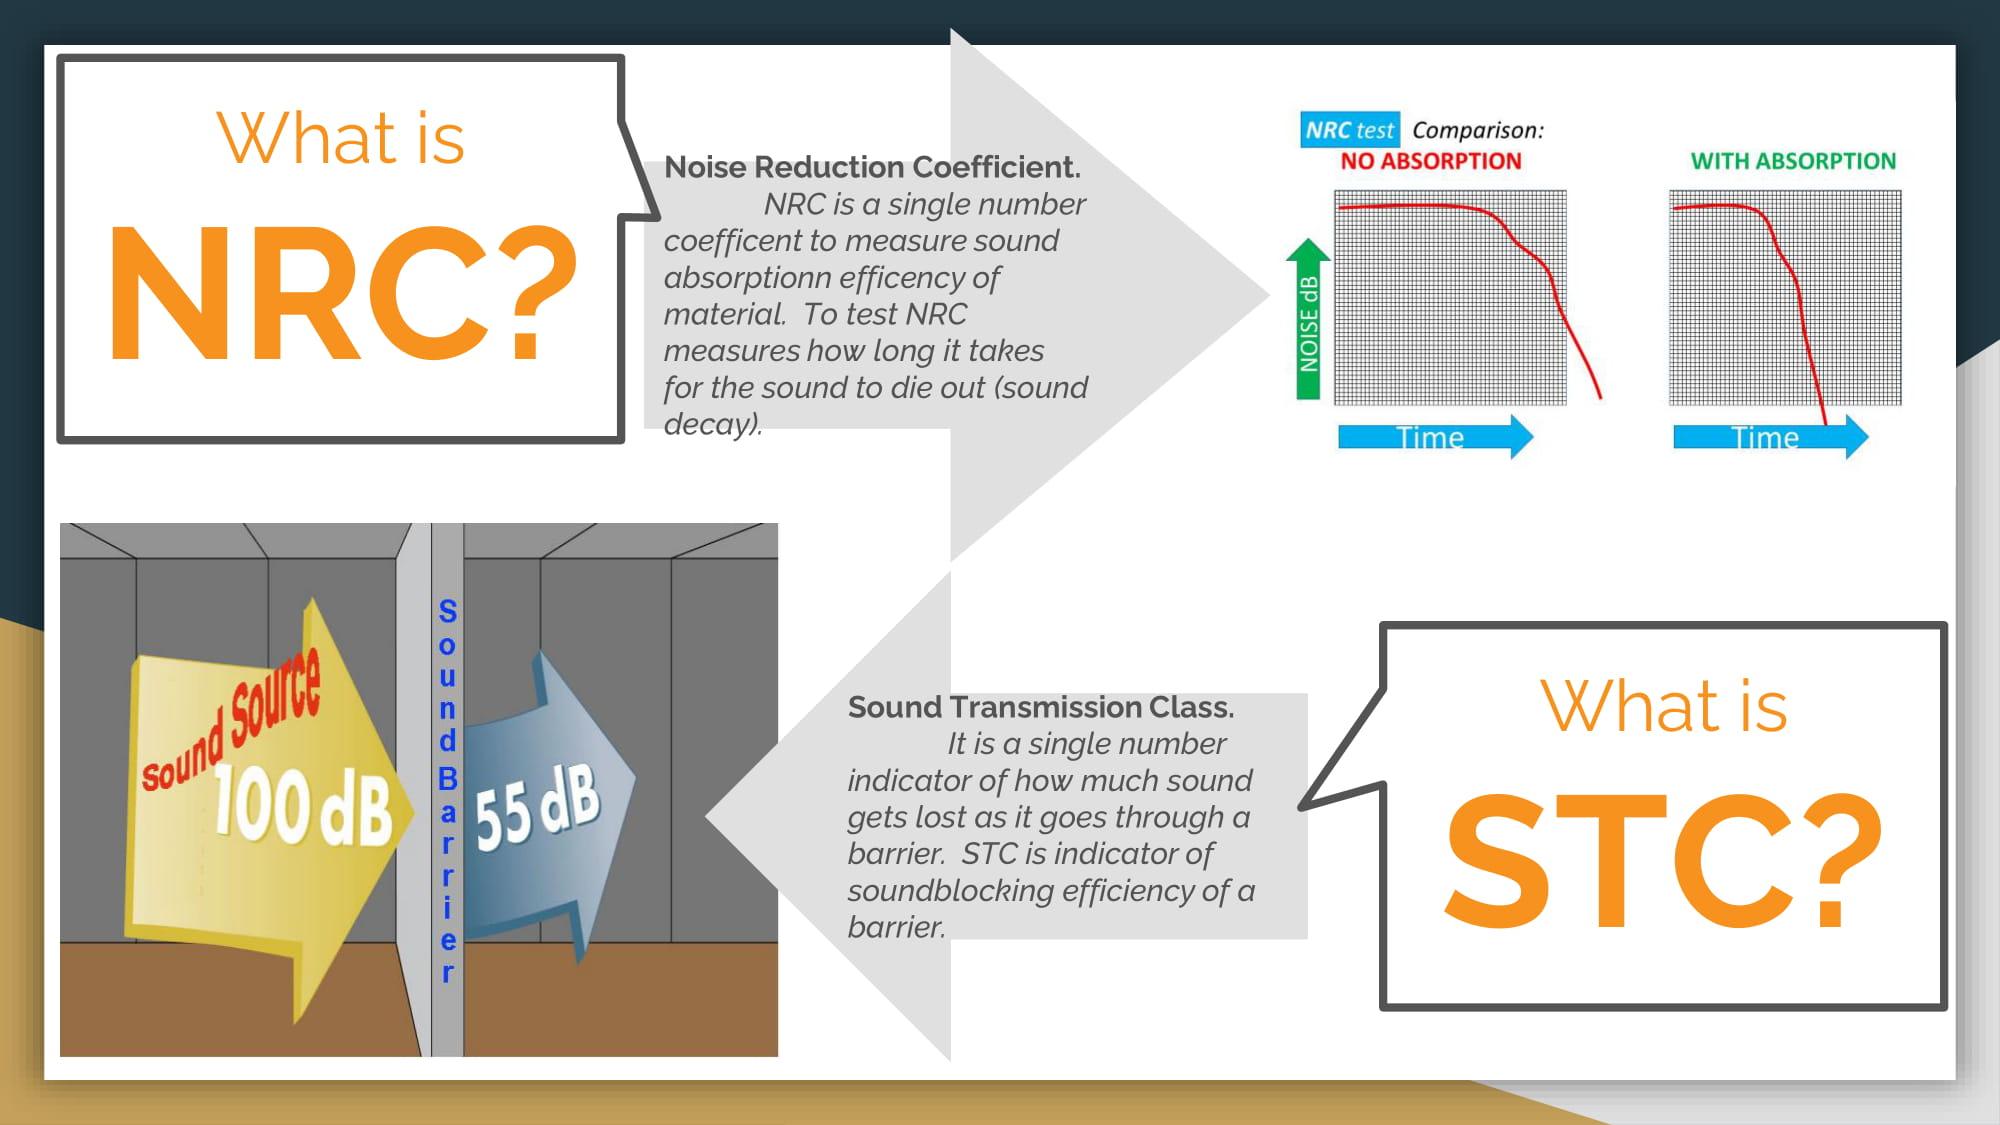 Noise Reduction Coefficient, Sound Transmission Class, NRC, STC, No Absorption, With Absorption